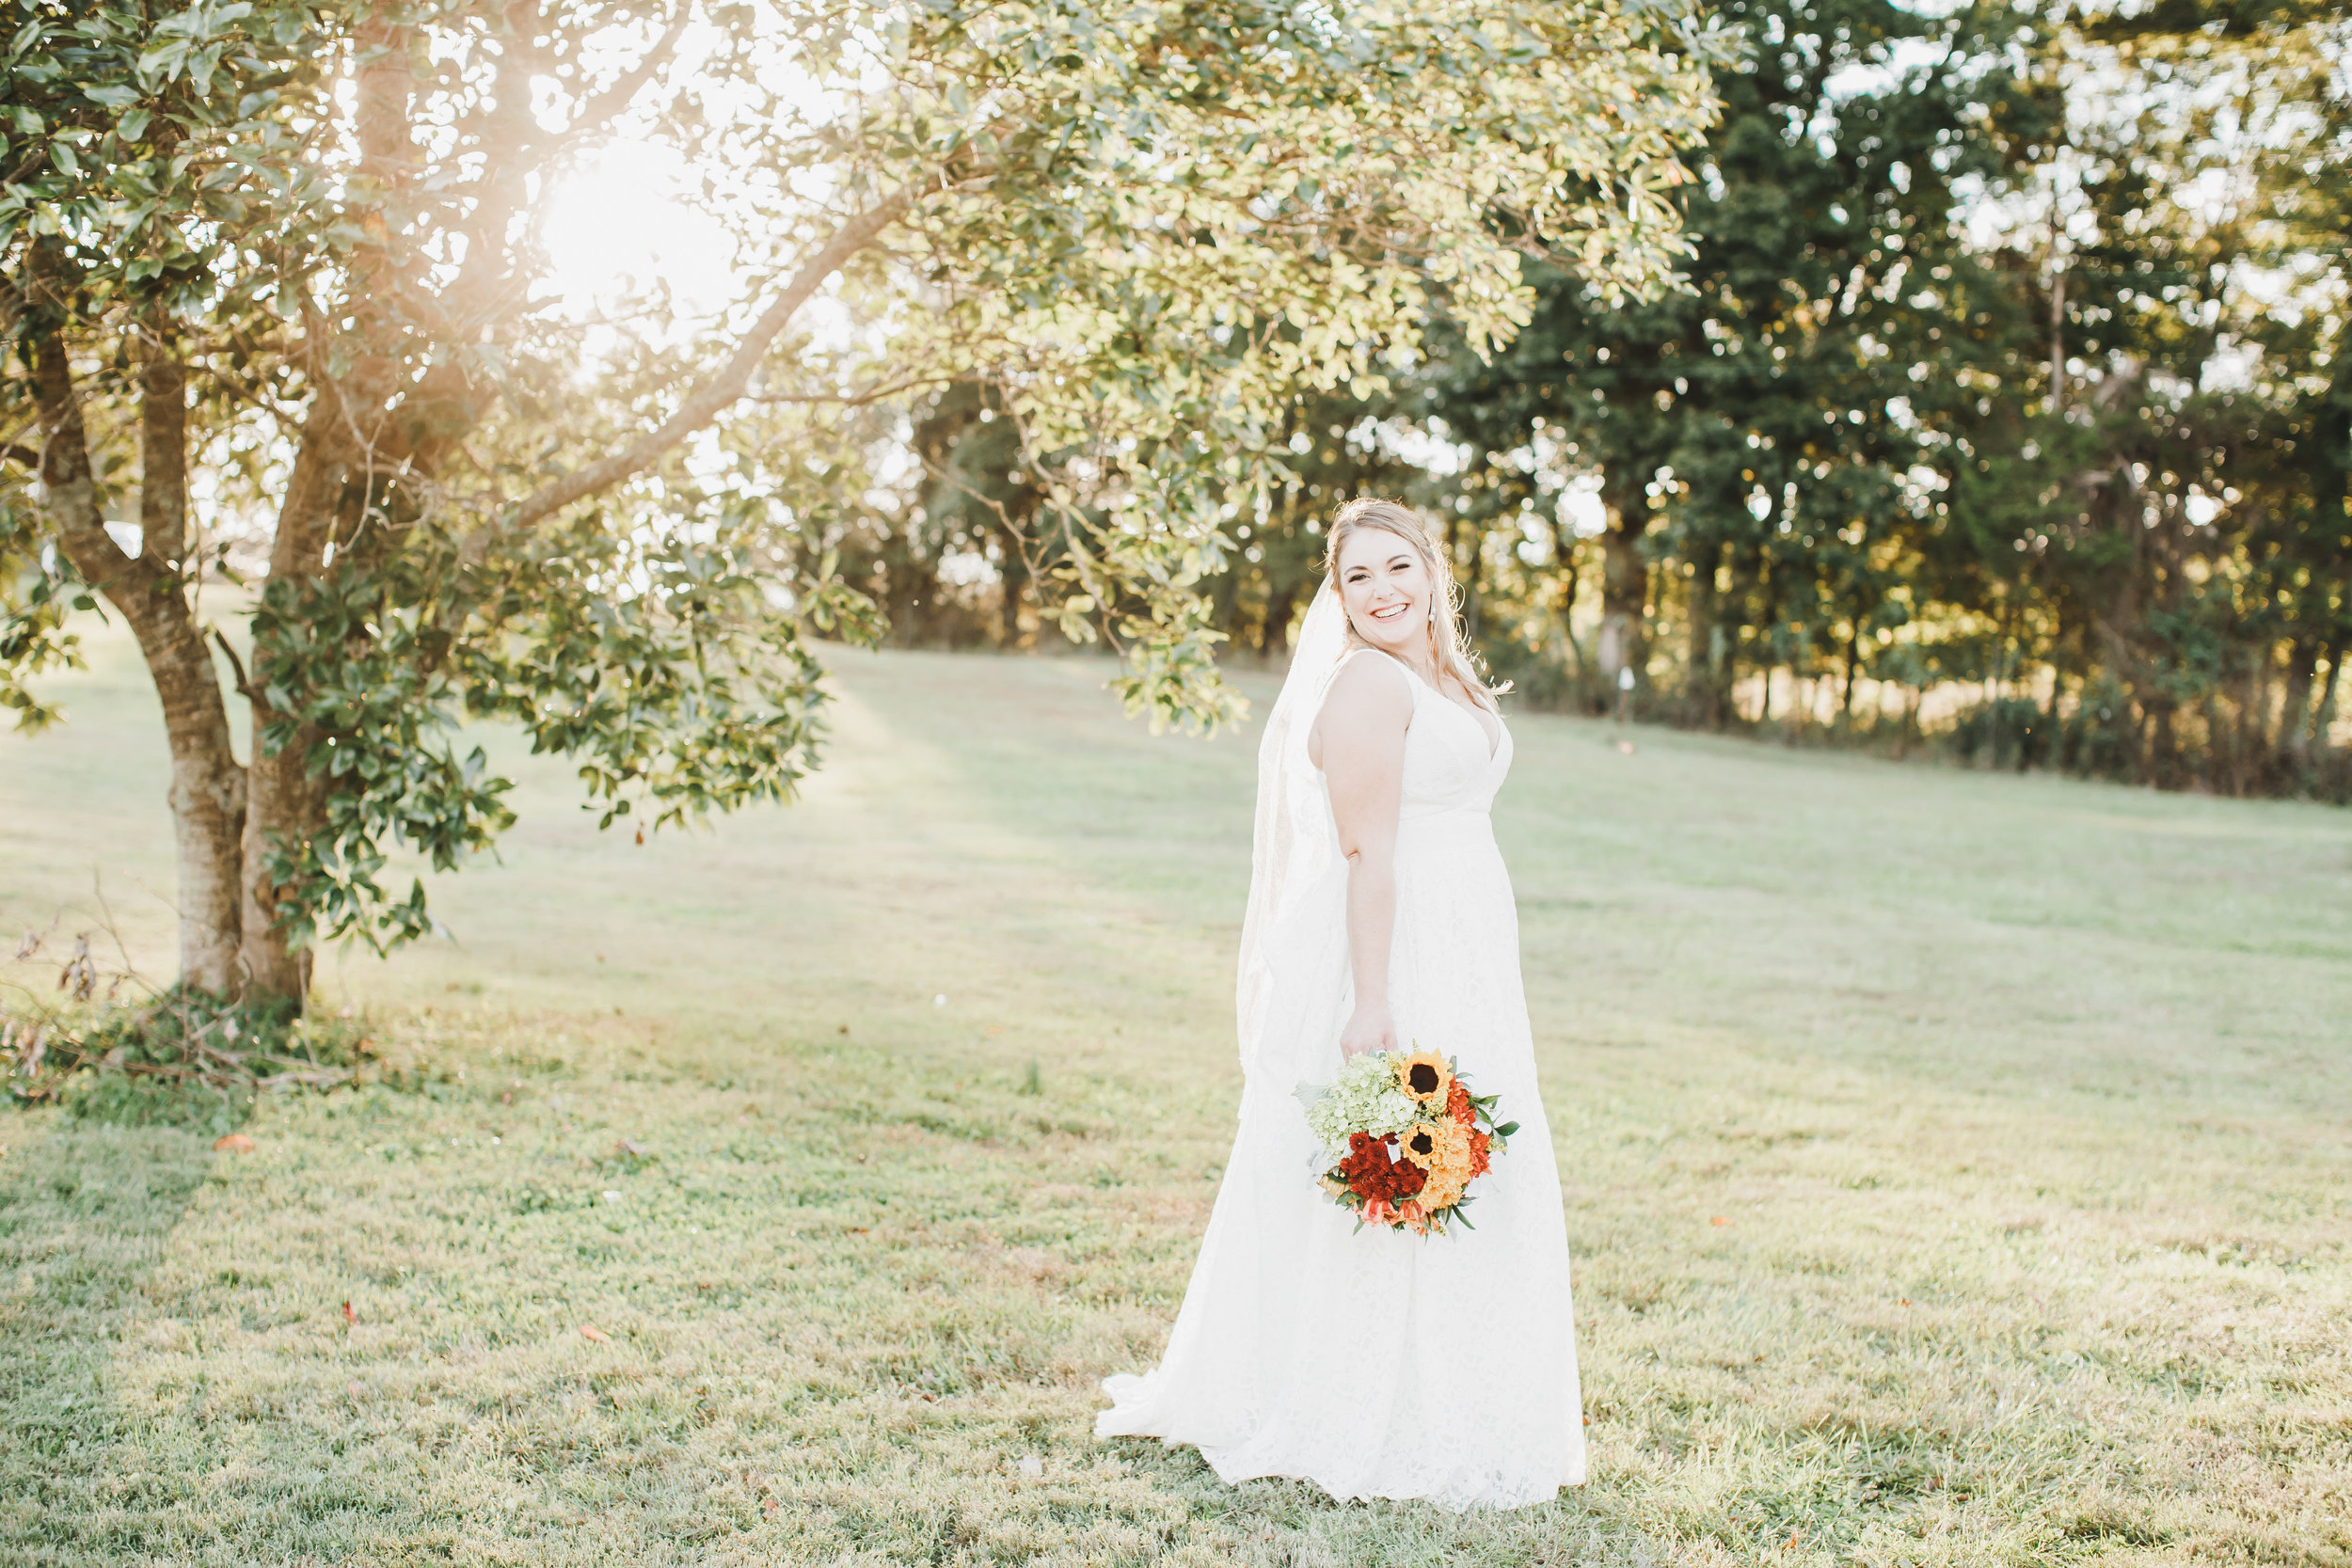 Fling - Virginia Wedding Photographer - Photography by Amy Nicole-4567-9.jpg